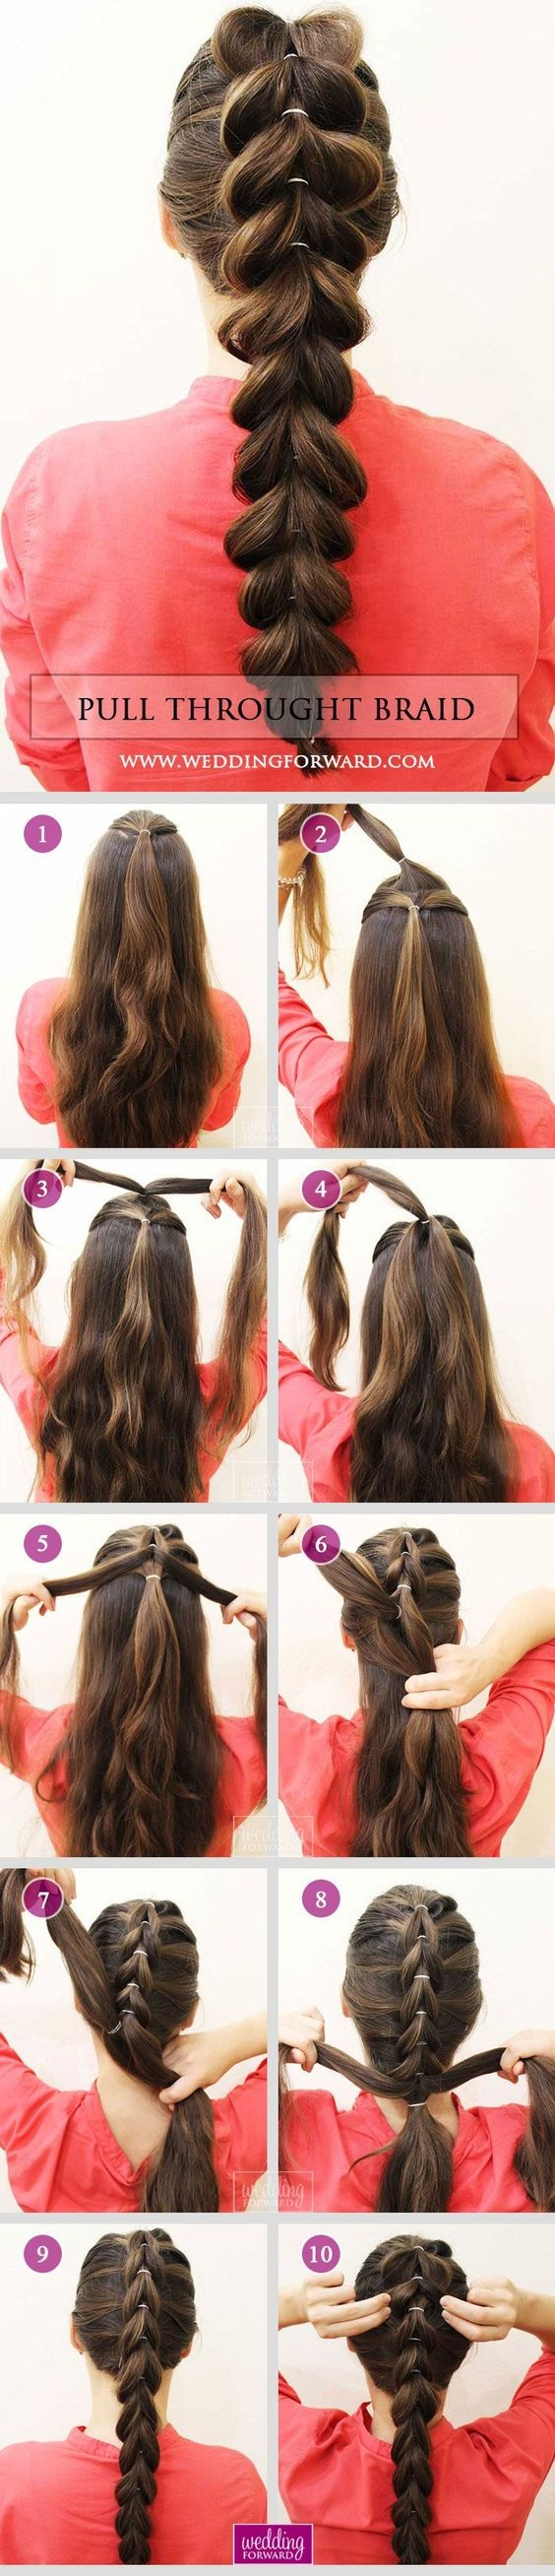 simple hairstyle and fast long hair: 10 models hairstyles and inspired tutorials Fast Simple Hairstyles